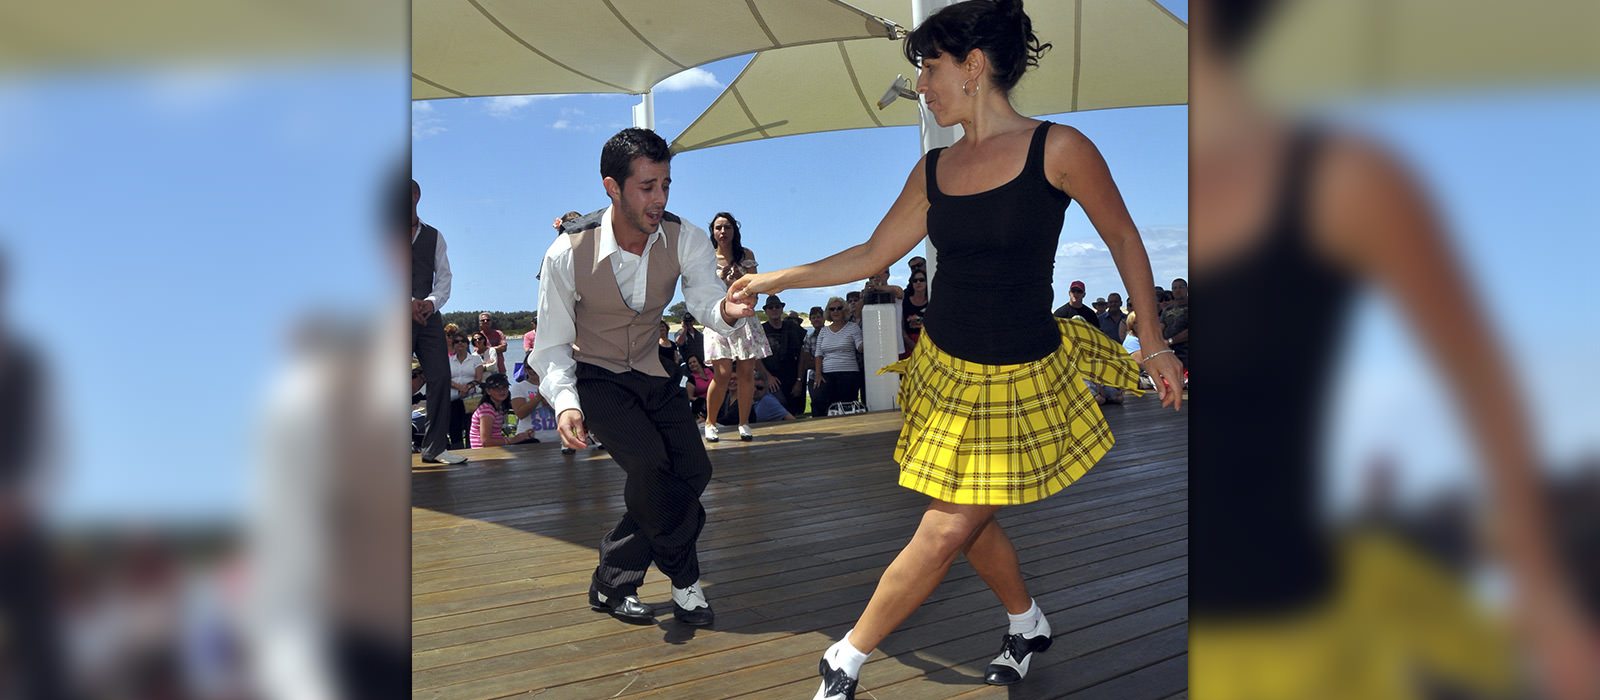 Where To Buy Dancing Shoes In Sydney